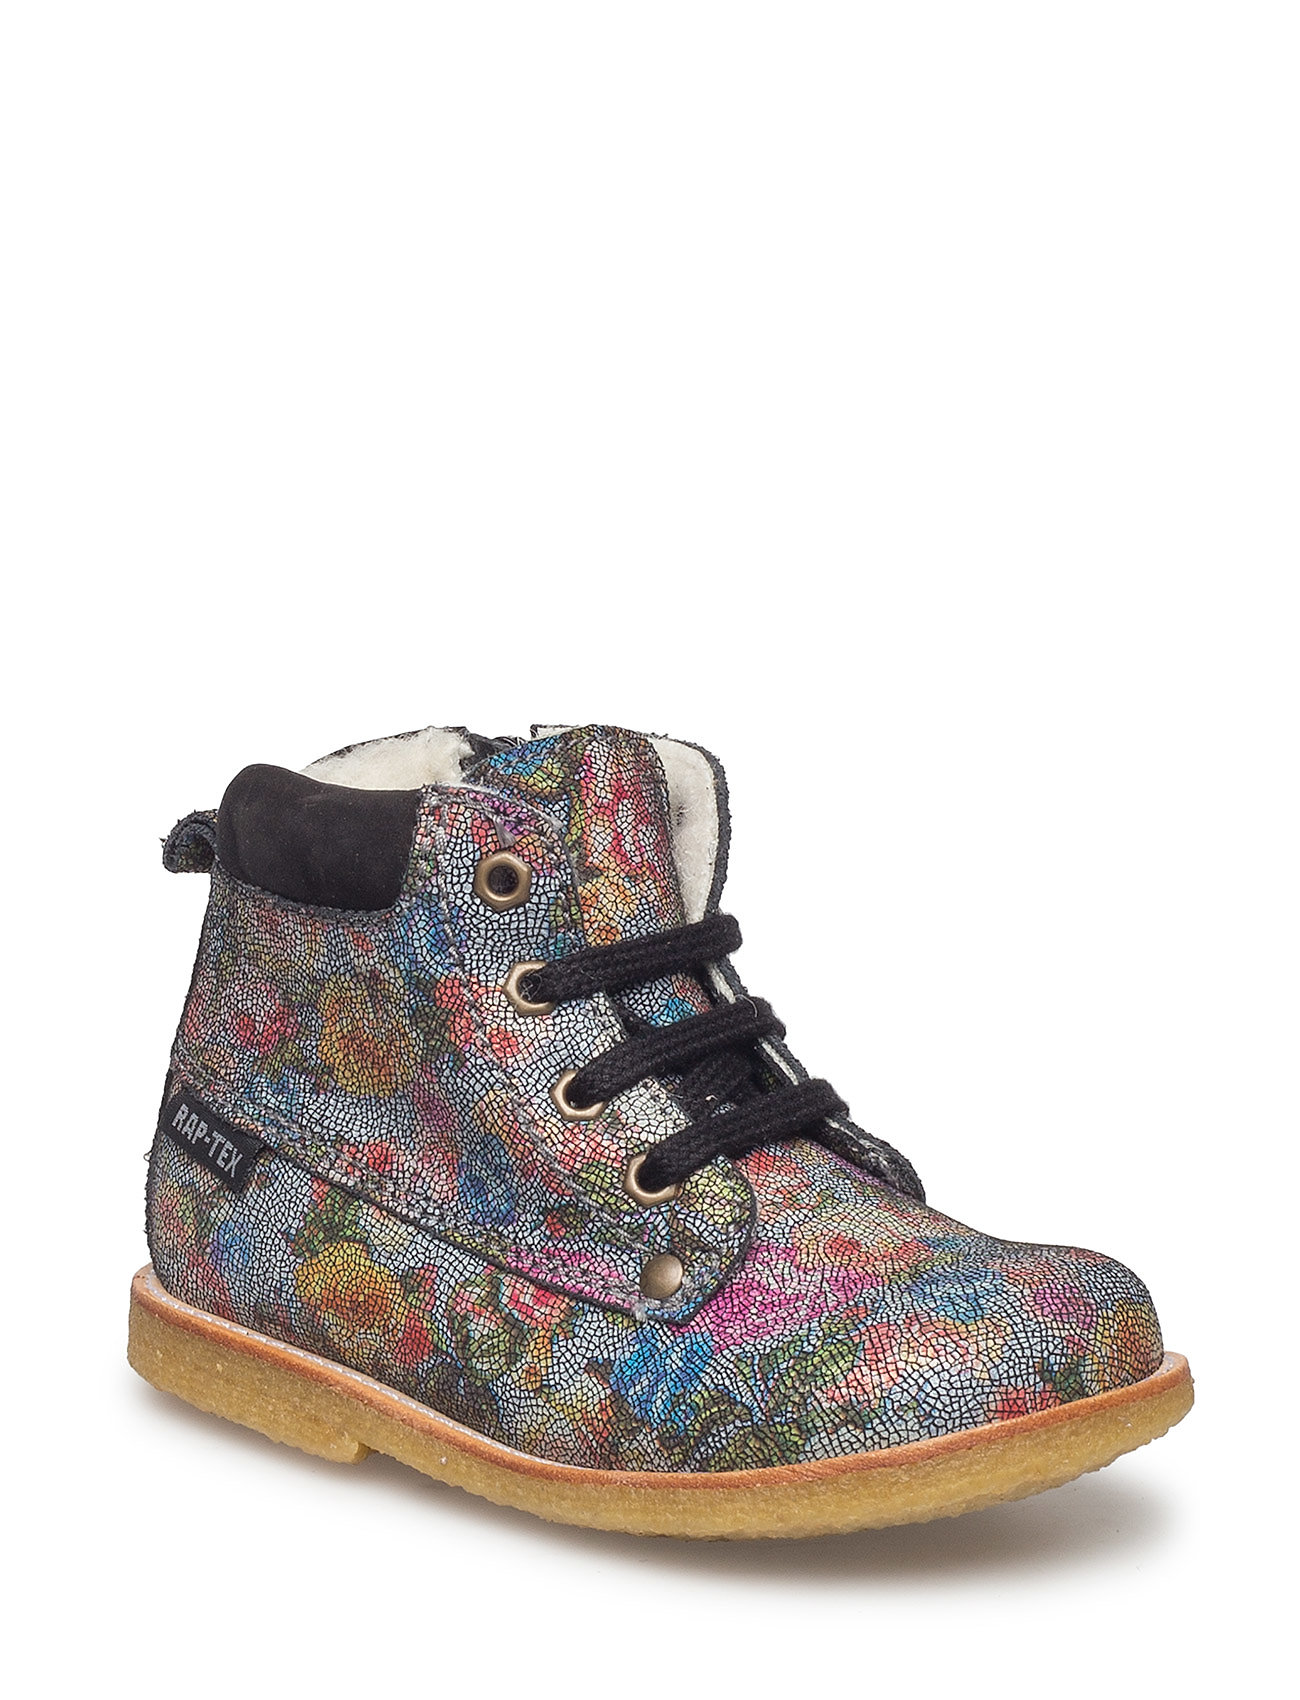 4a7cda39c11 Arauto RAP Ecological Hand Made Water Proof Low Boot (13-flower ...